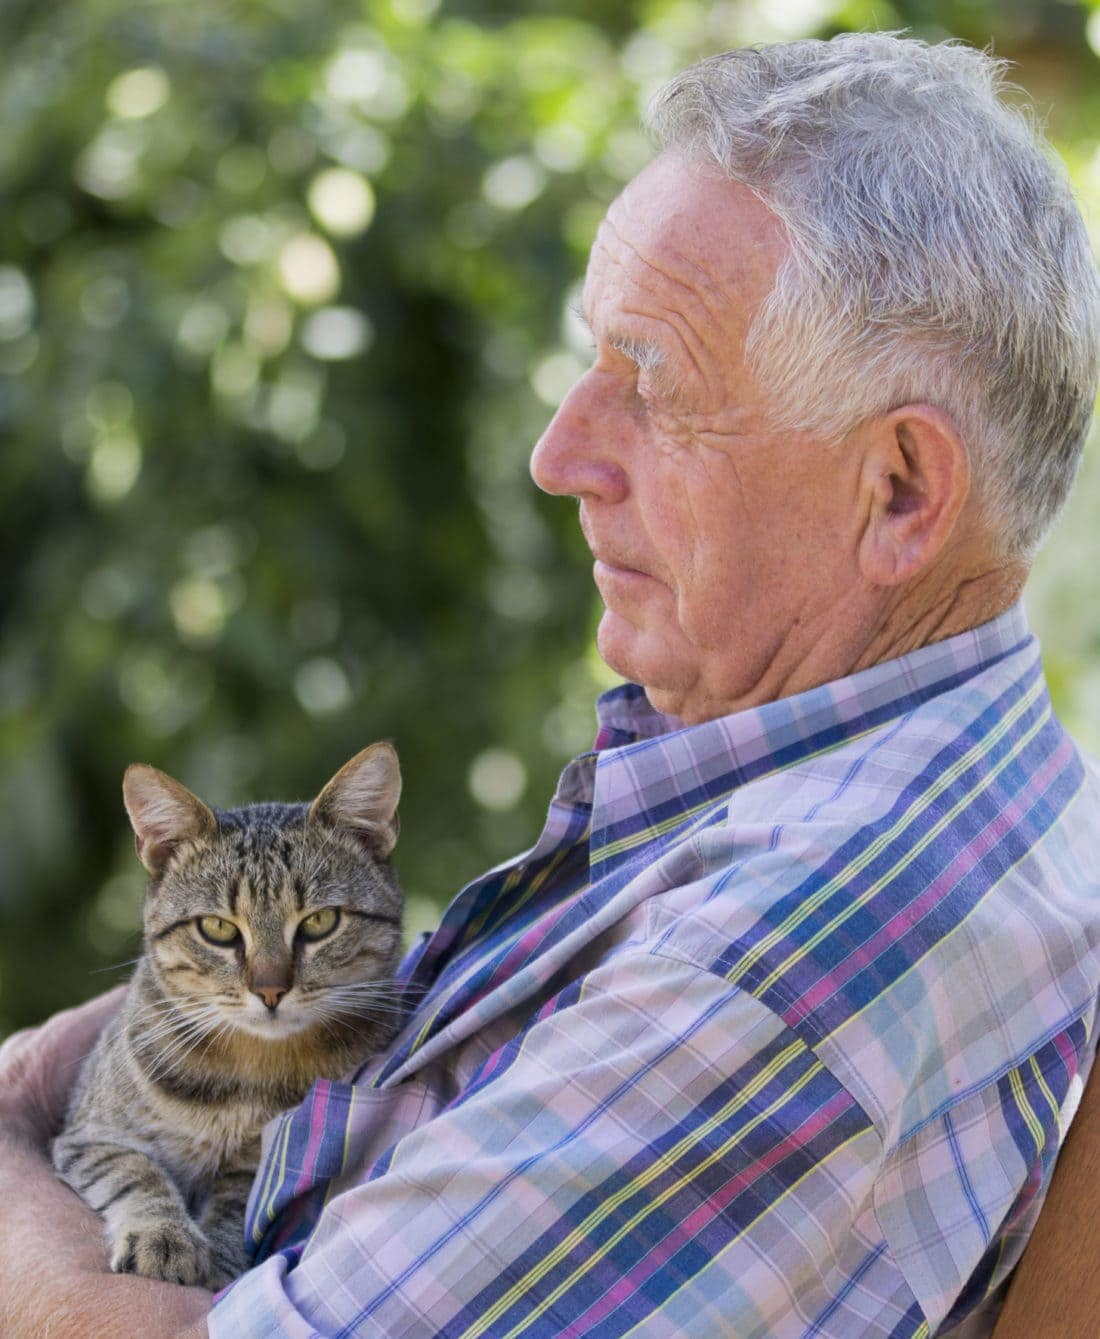 Don't forget your pets in your will - Sandton SPCA